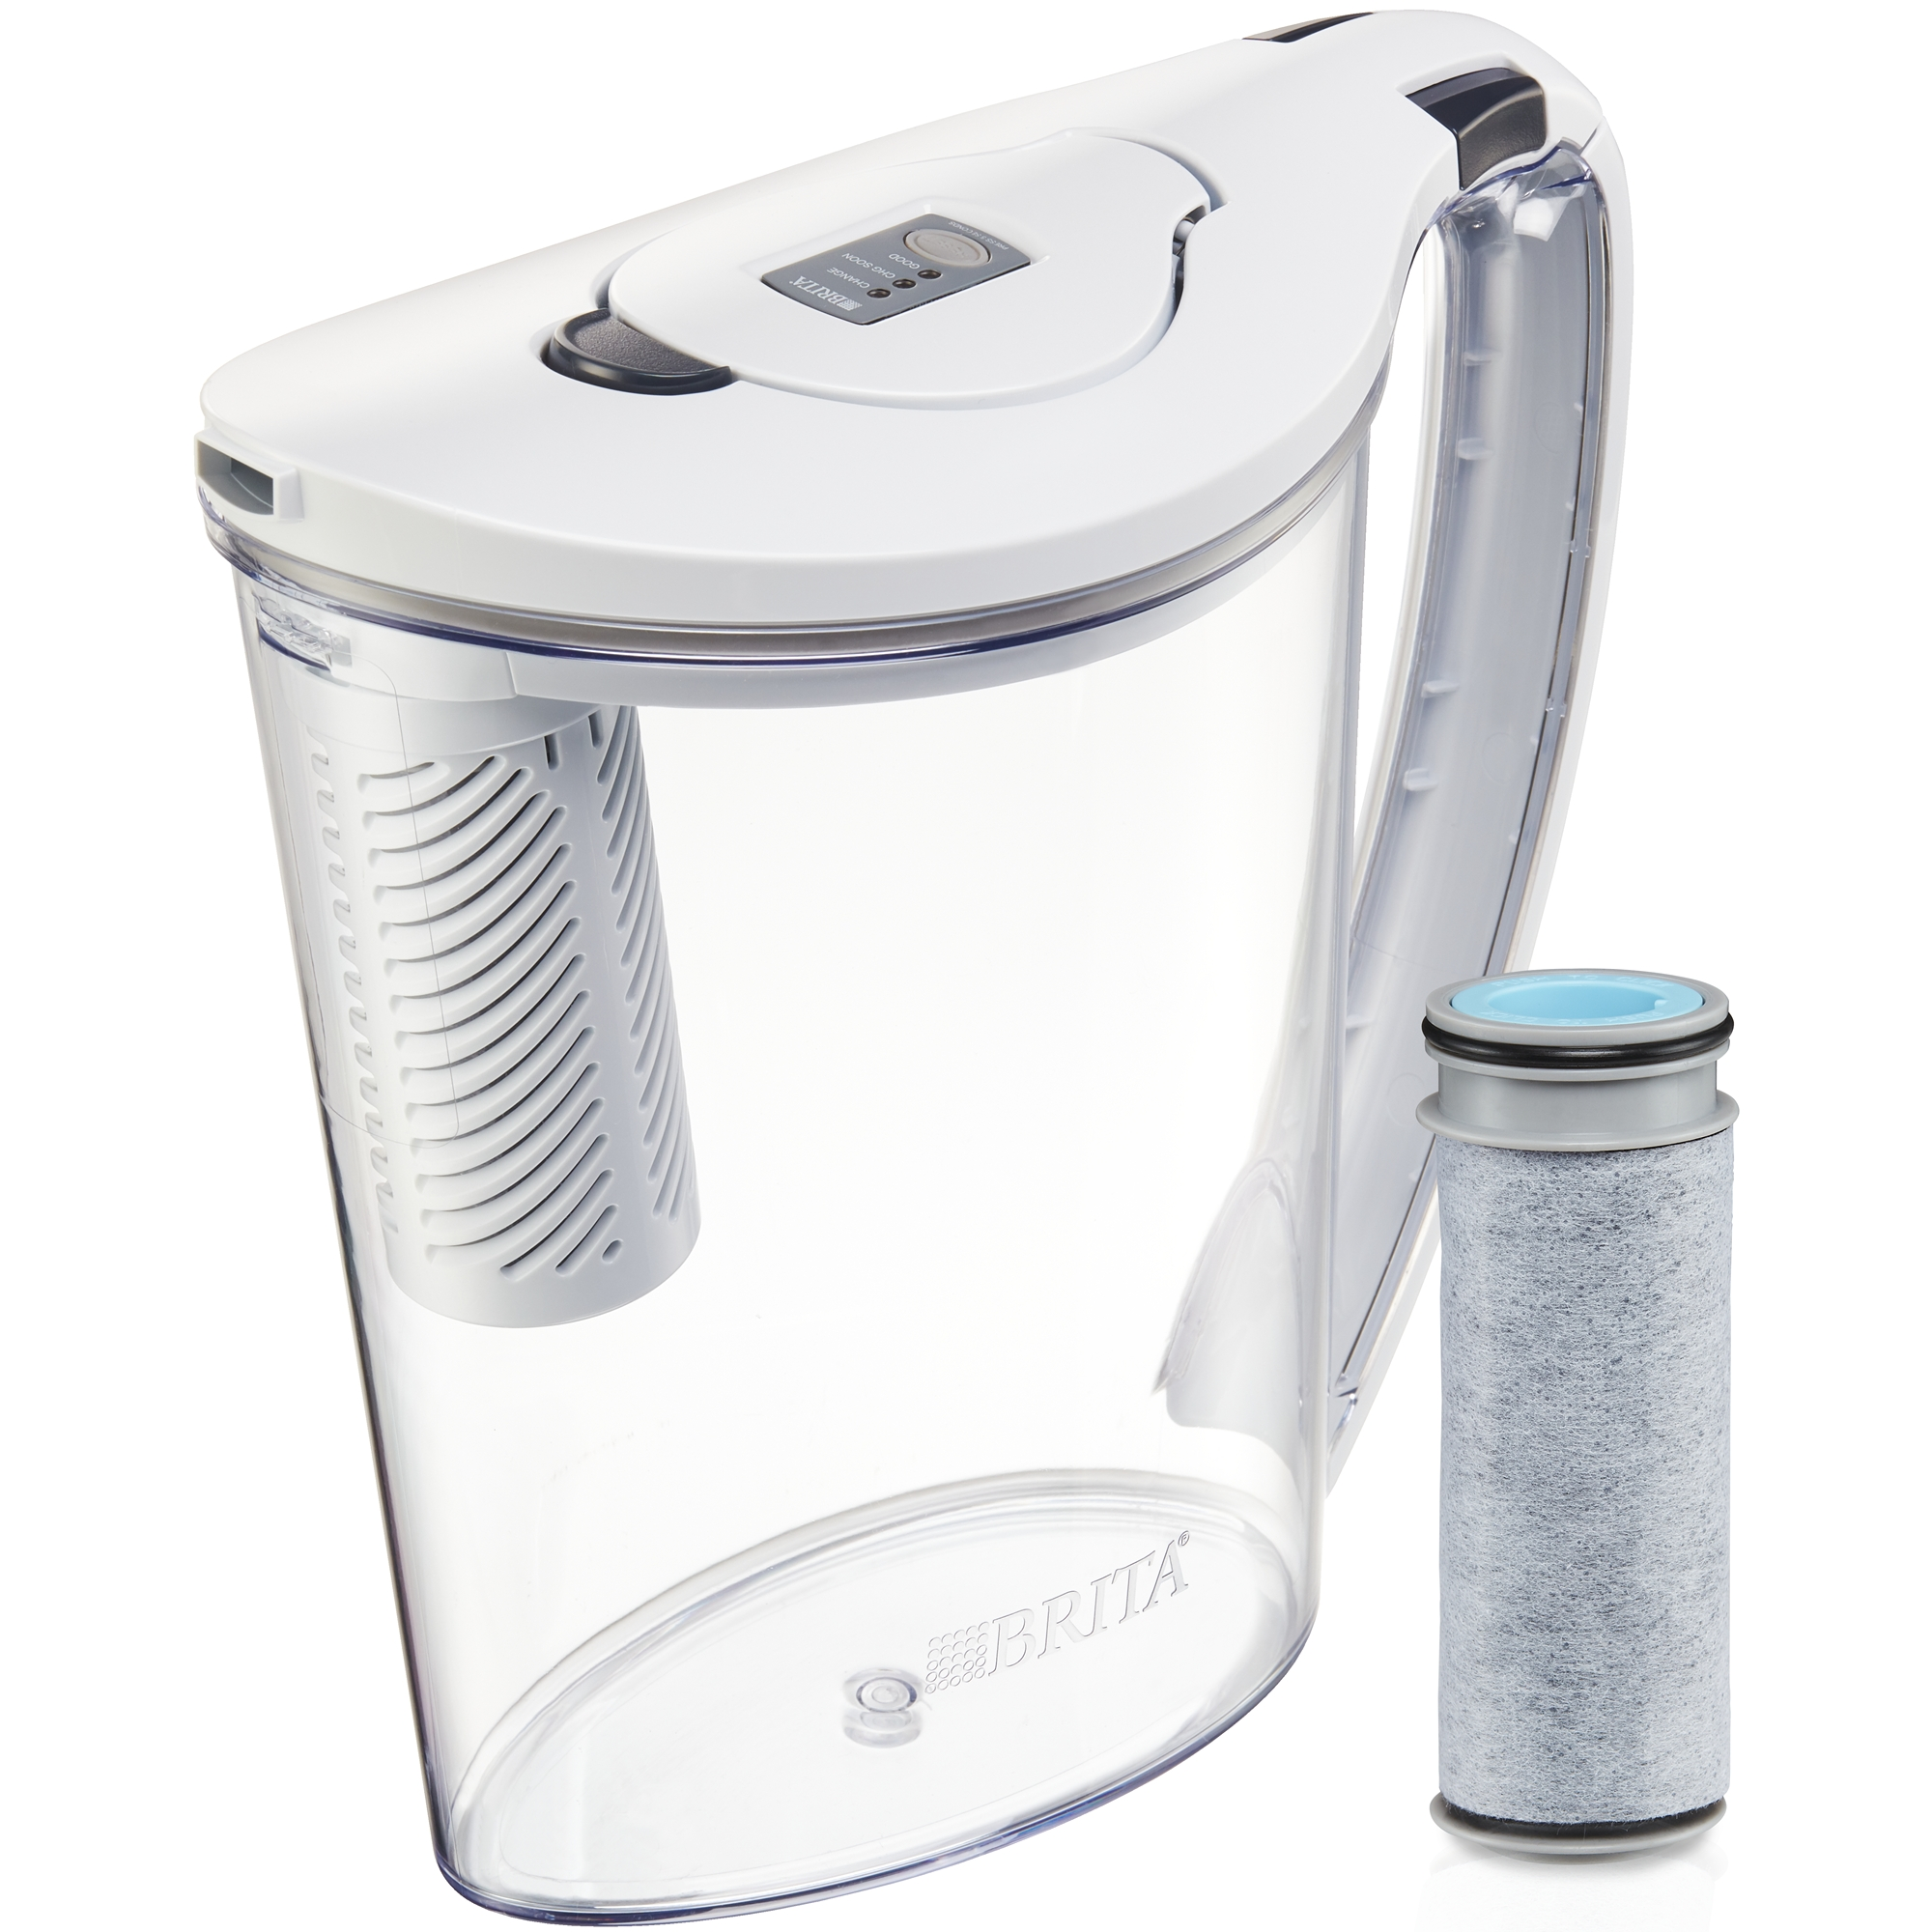 Brita Stream Filter as You Pour Water Pitcher with 1 Filter, Hydro, BPA Free, Chalk White - 10 Cup